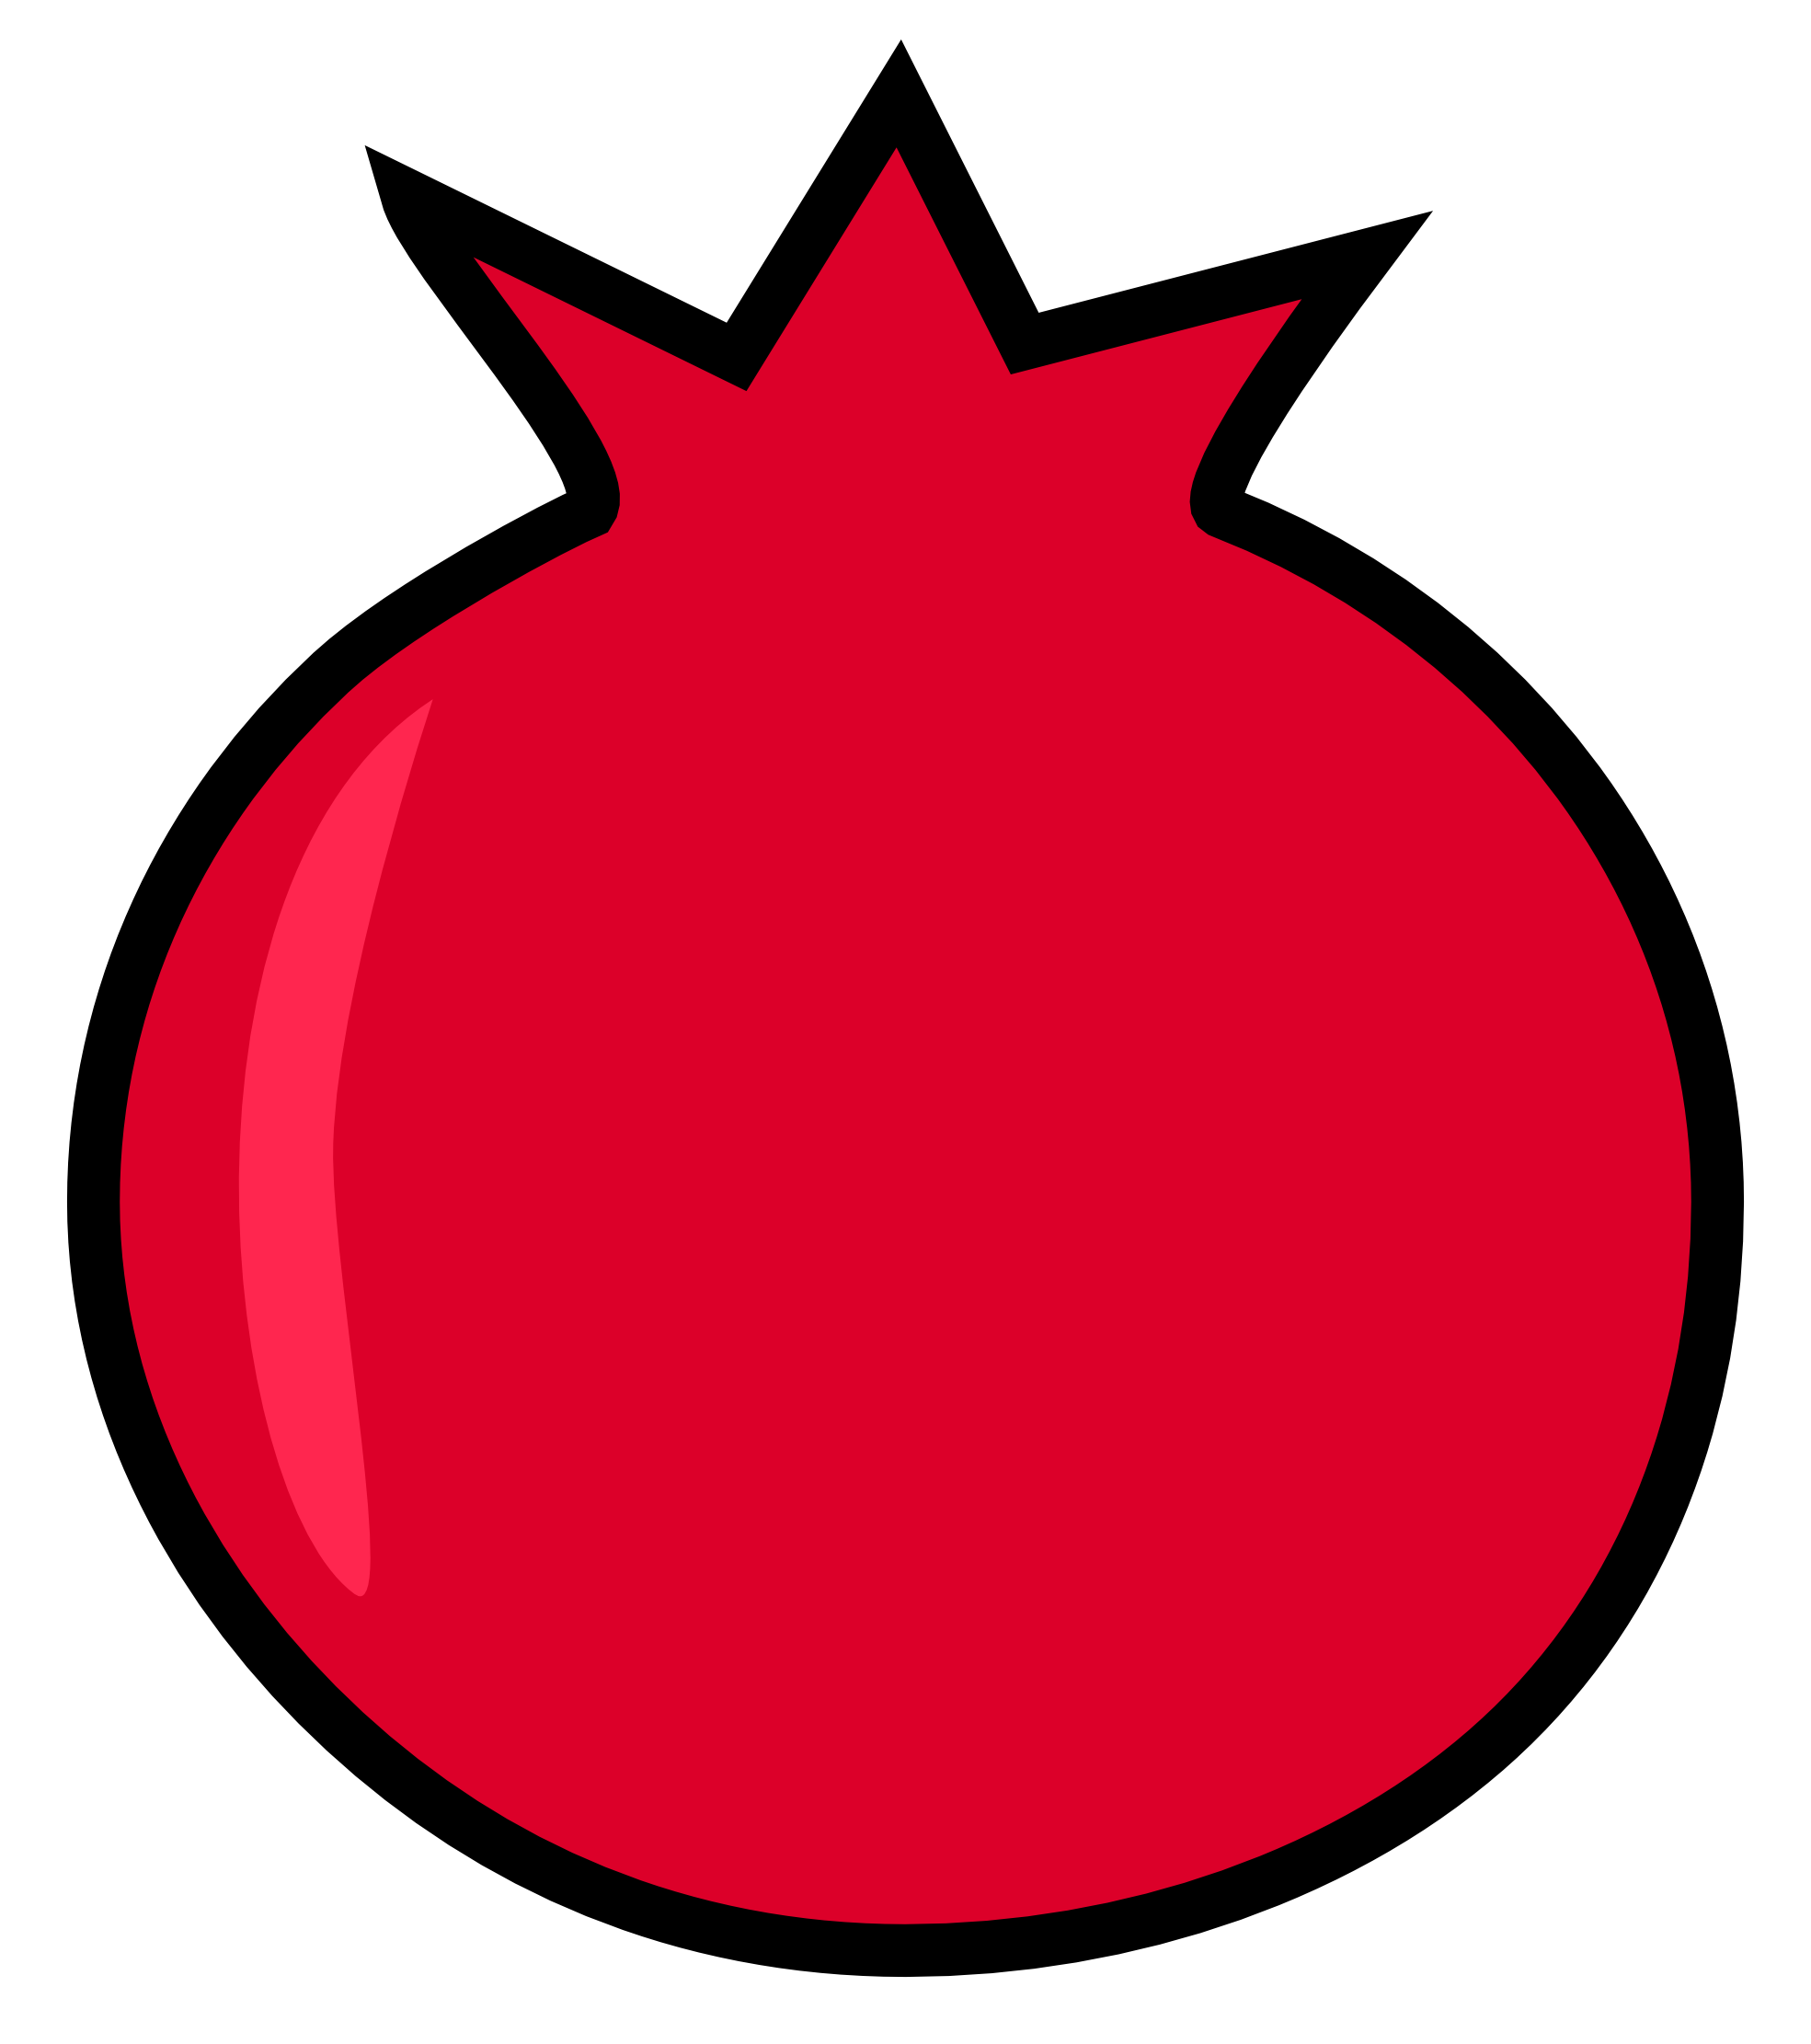 Free Download Pomegranate Png Images